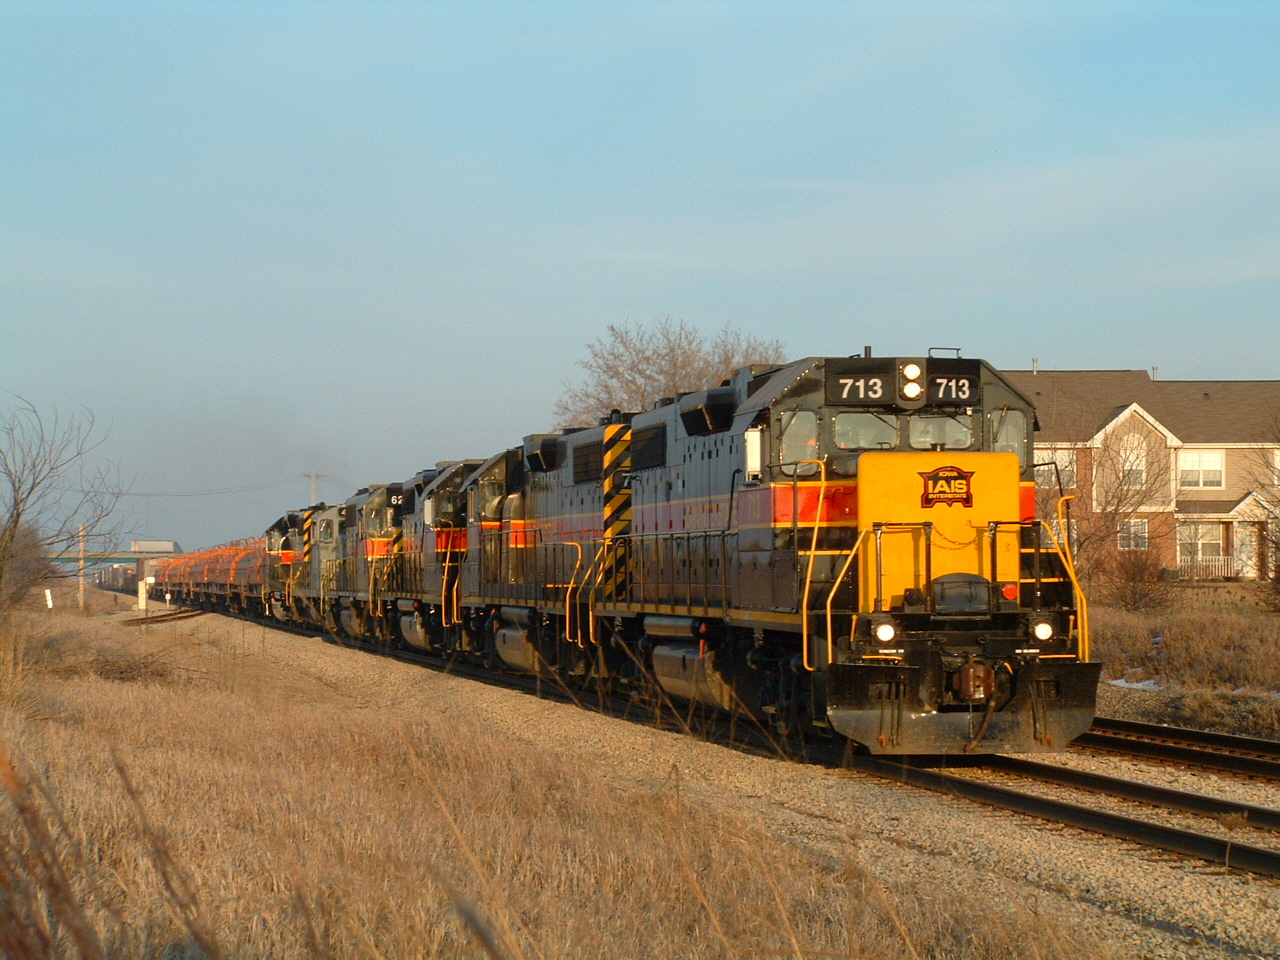 BICB thunders through Mokena's Ozinga spur with an eclectic mix of new and old. We have 713 leading 702, 717, 626, GP16 495, and 703. I remember only the 495 and 703 were online making quite the racket through town. It was almost impossible to catch a old 400 or even 600 on the point by now... 02-05-05